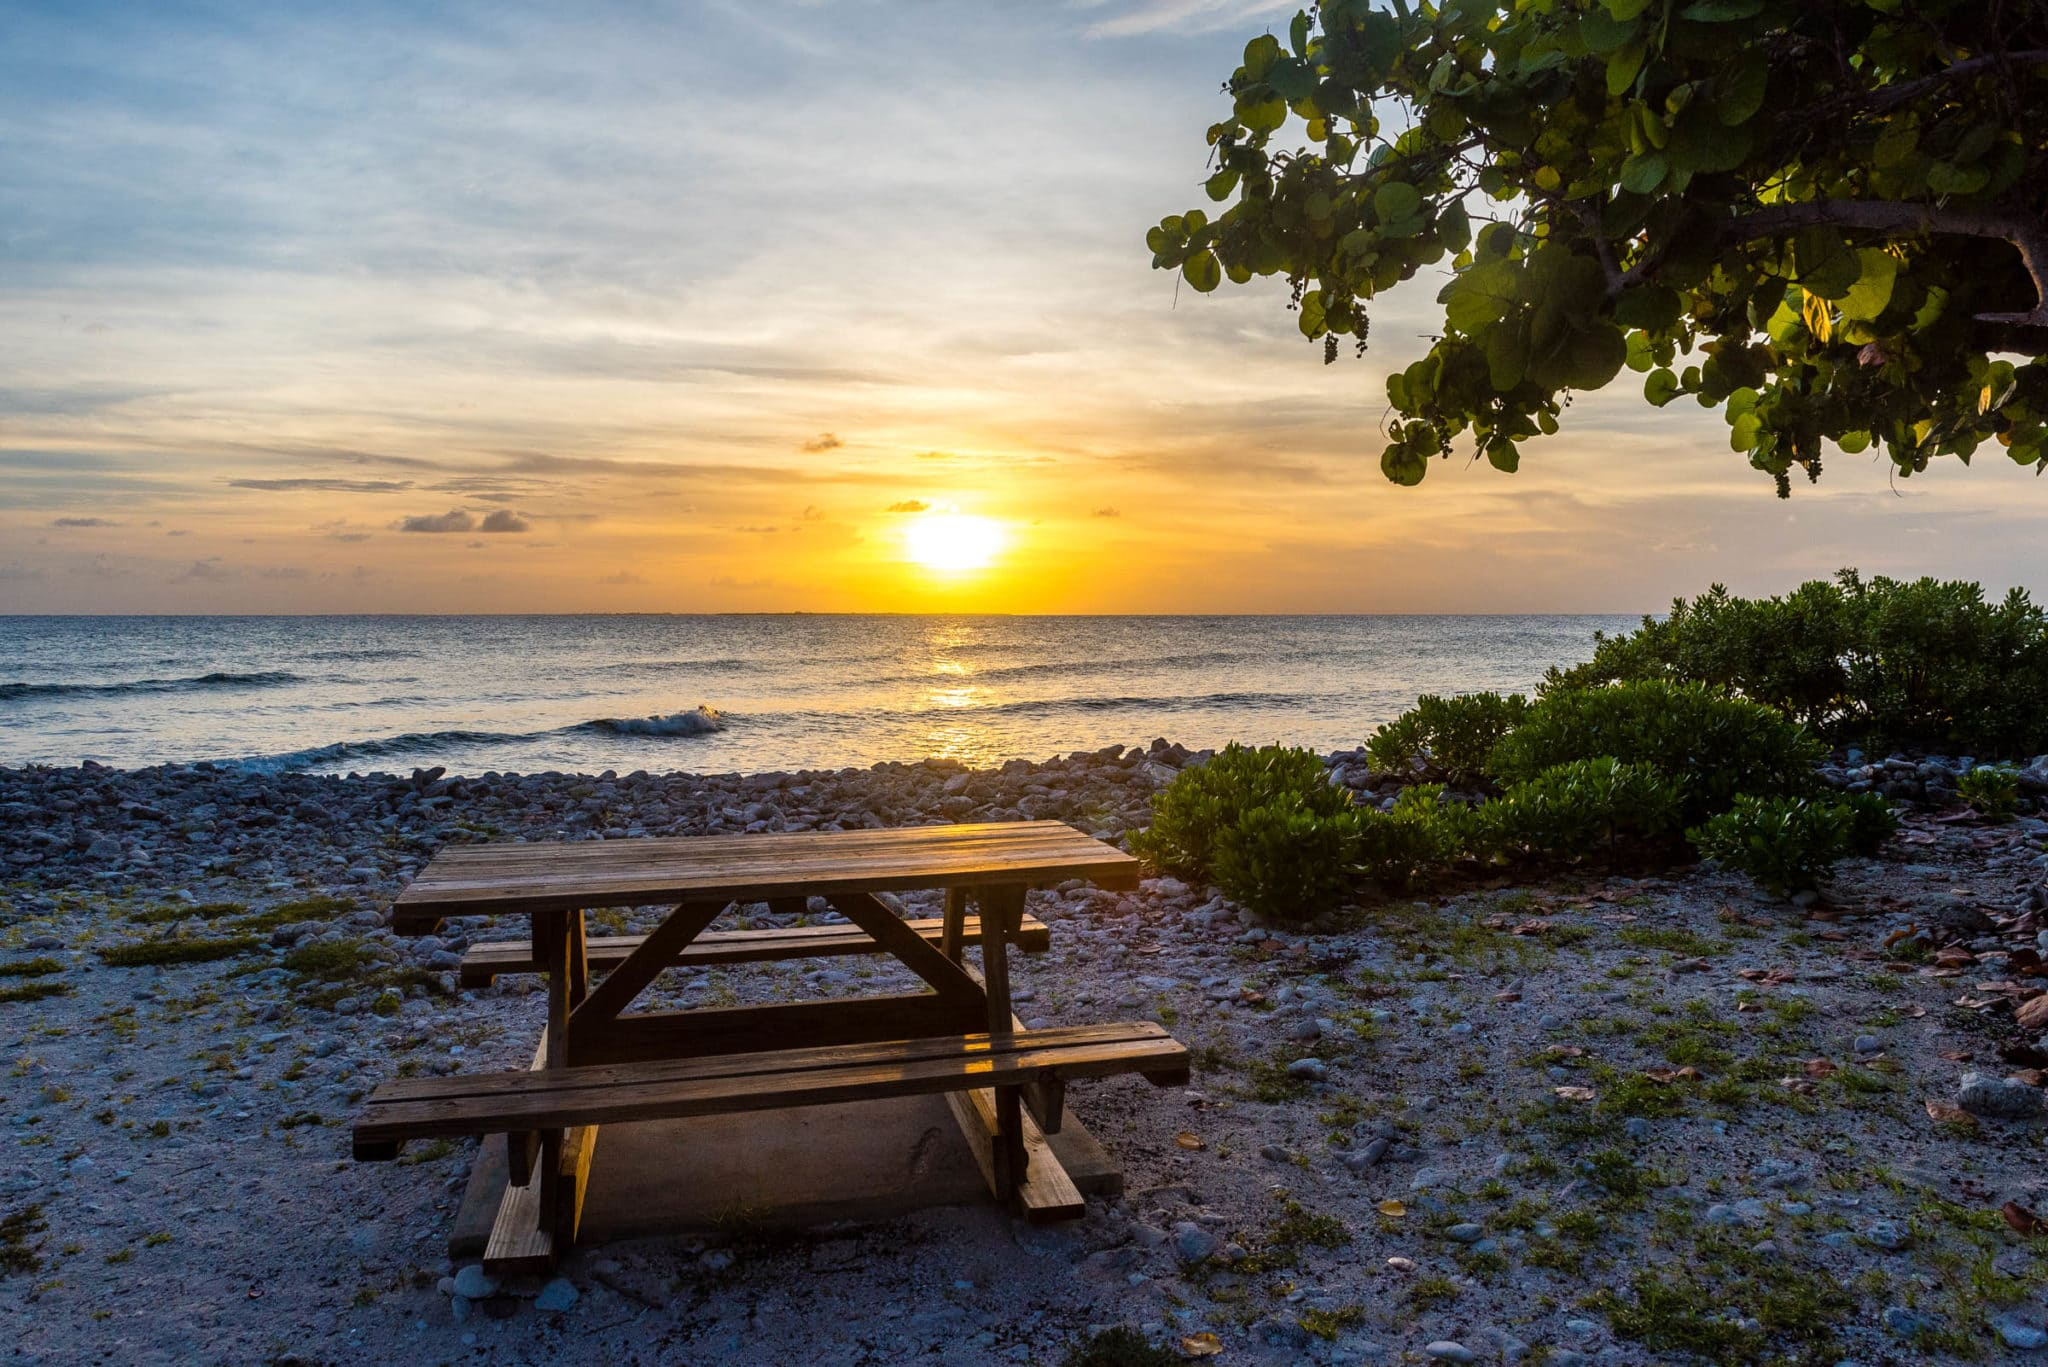 The Sunset Bench